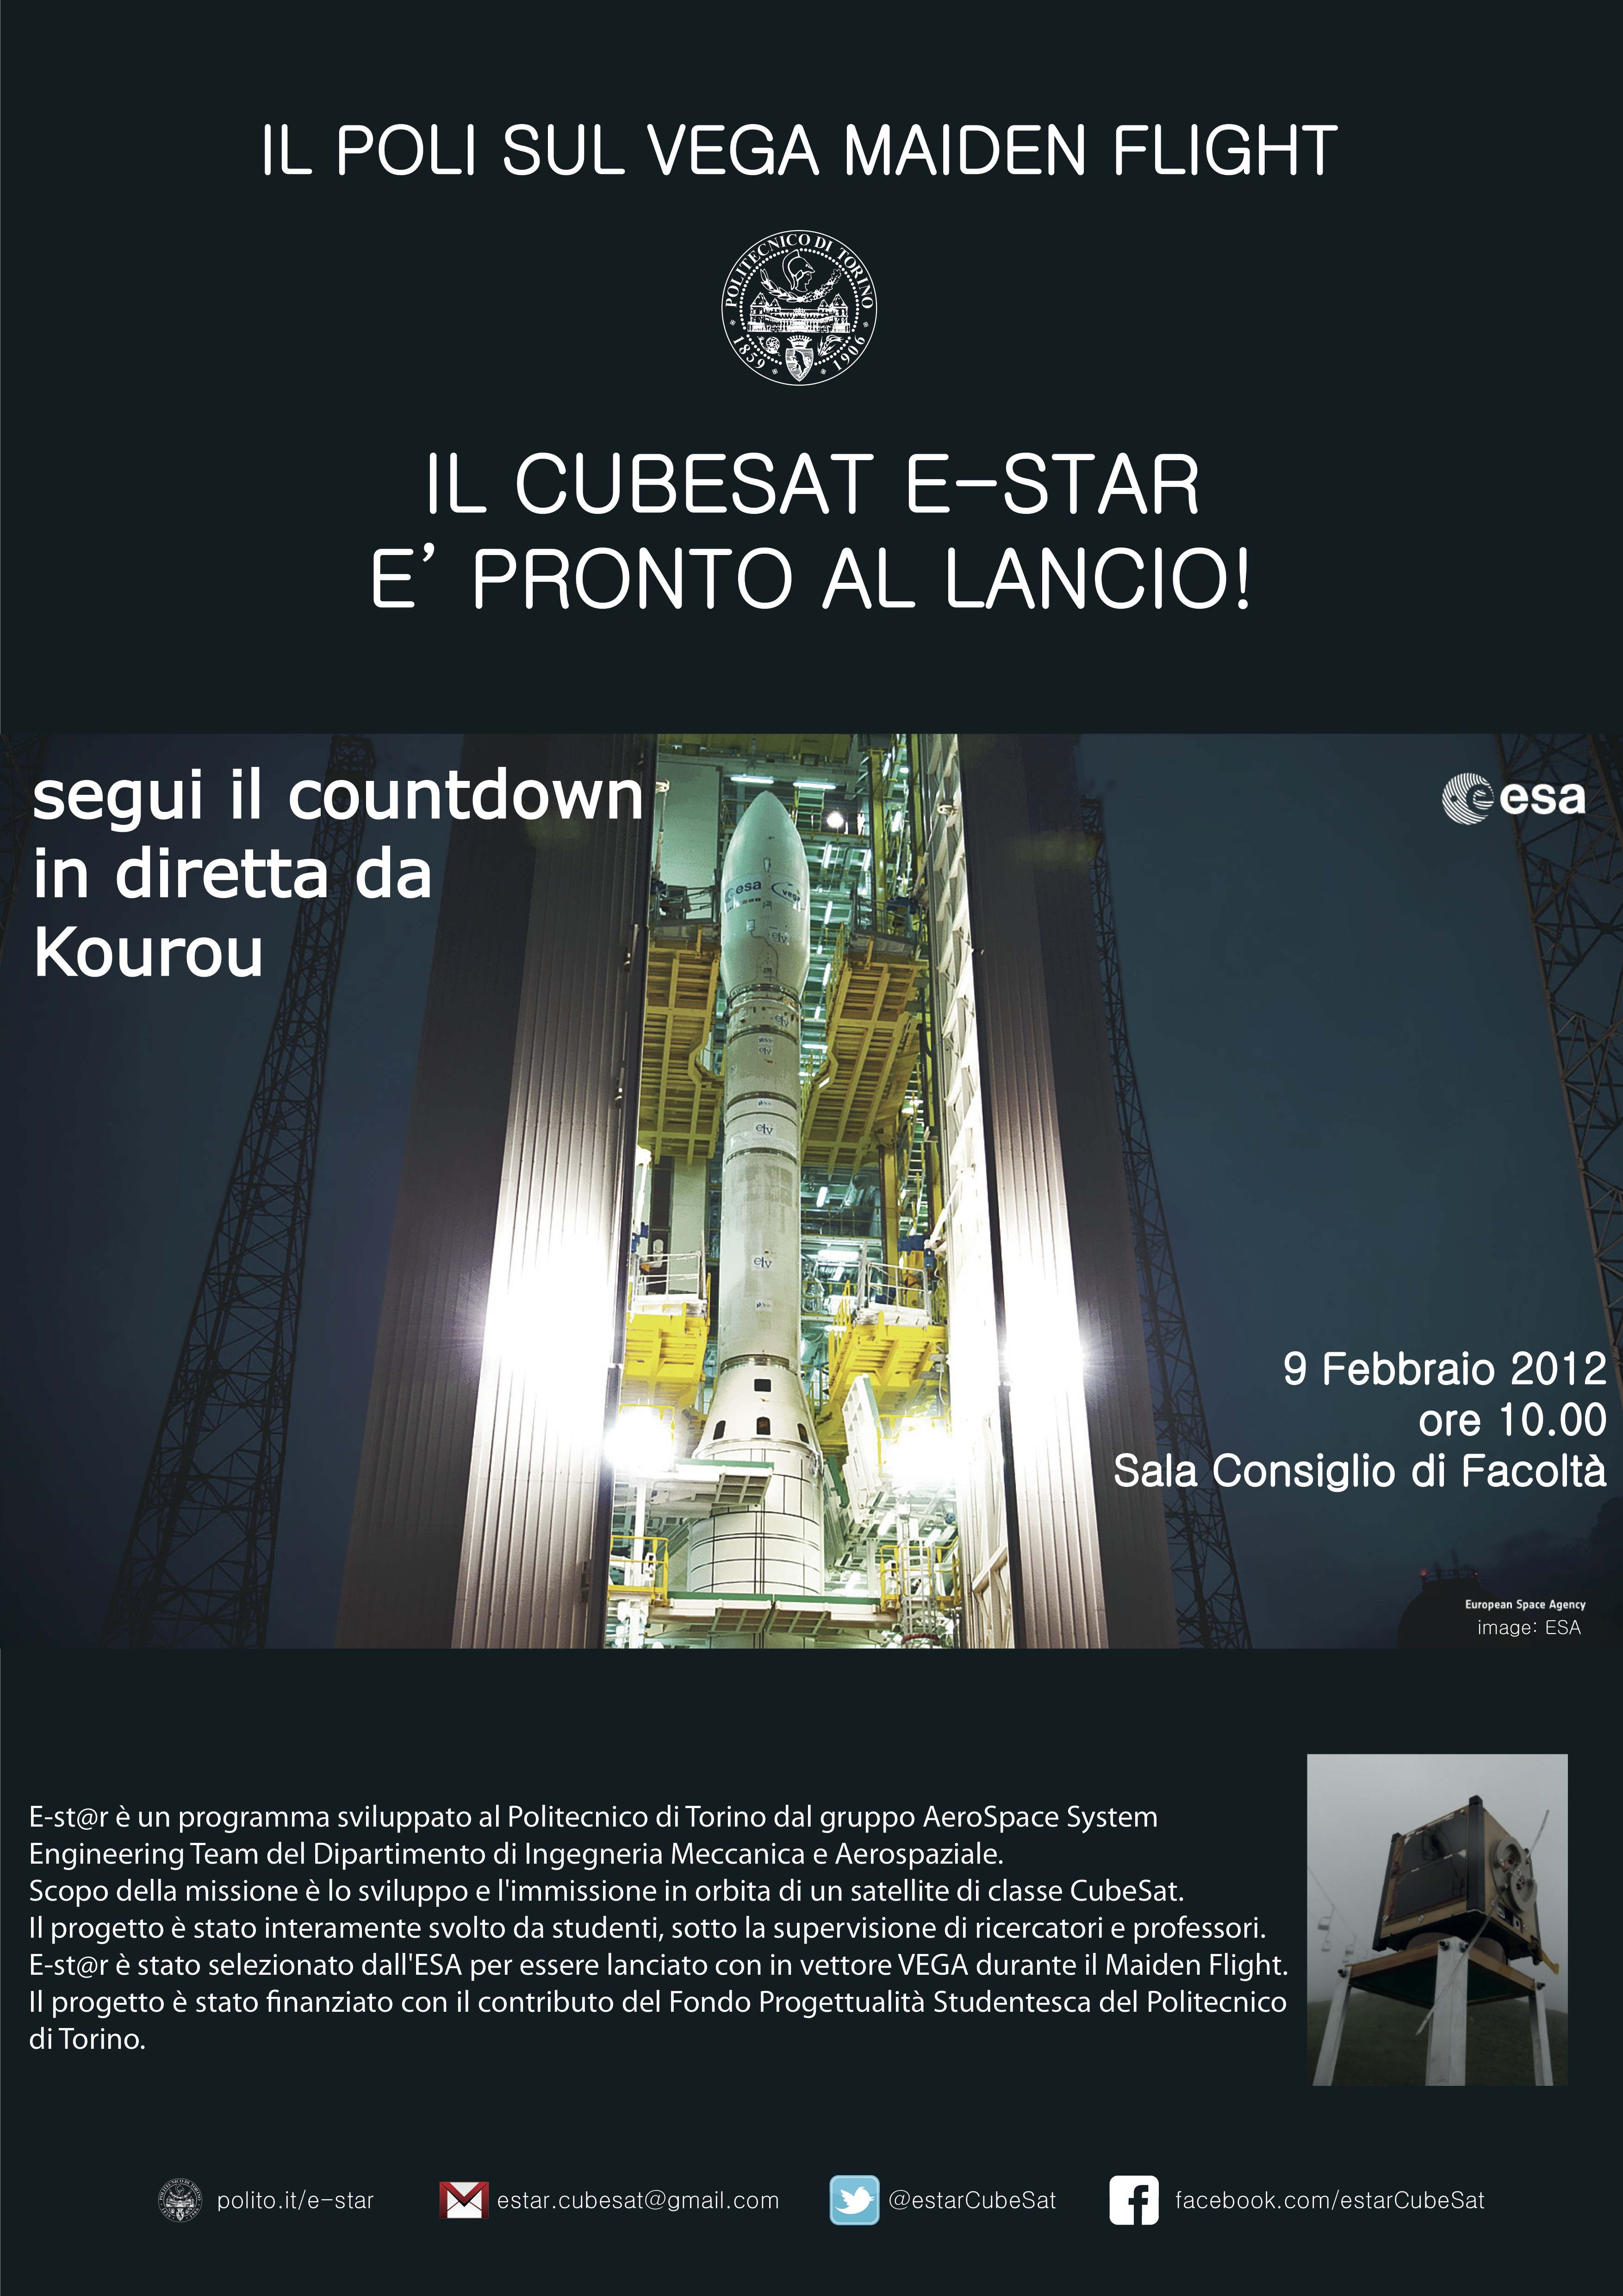 Flier of the event held at Politecnico di Torino